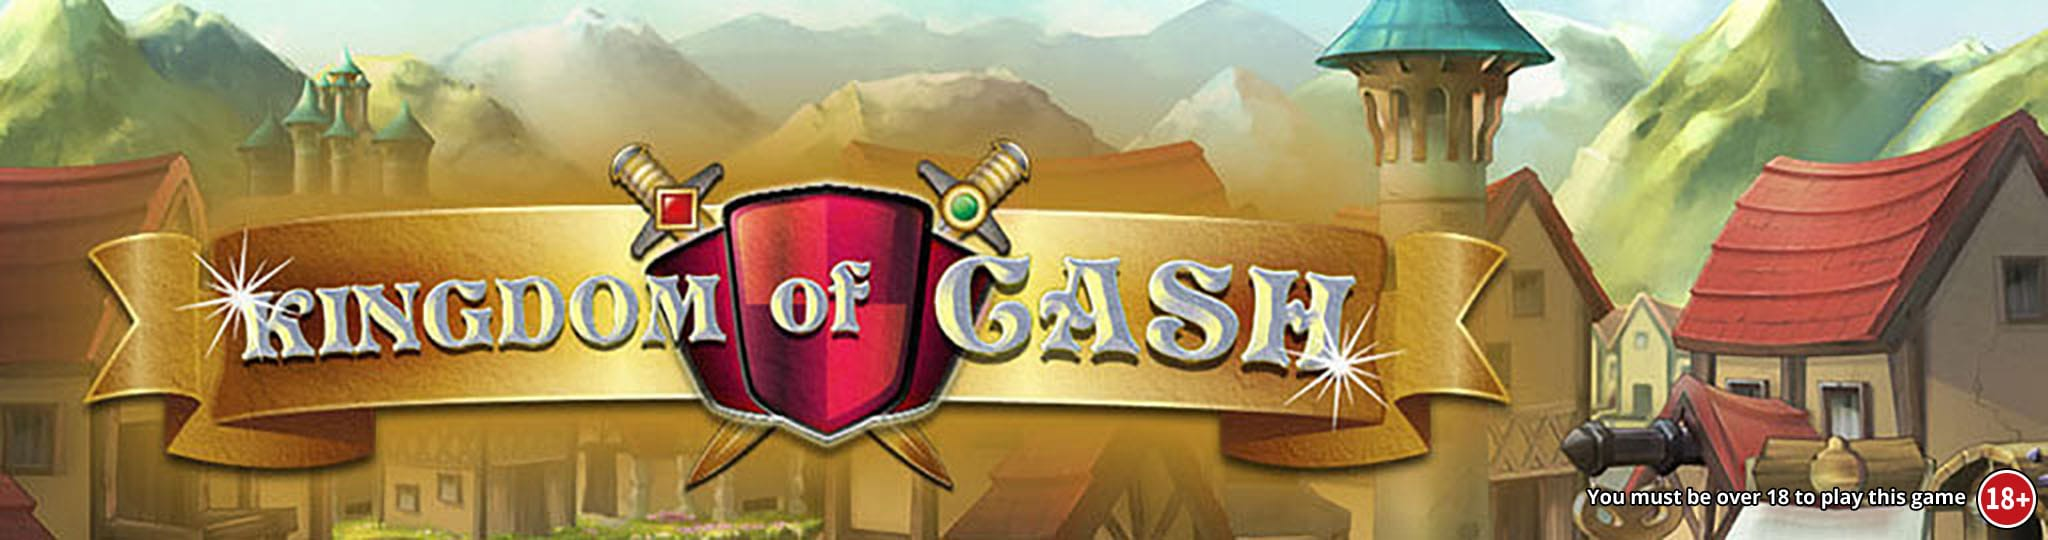 Kingdom of Cash Logo